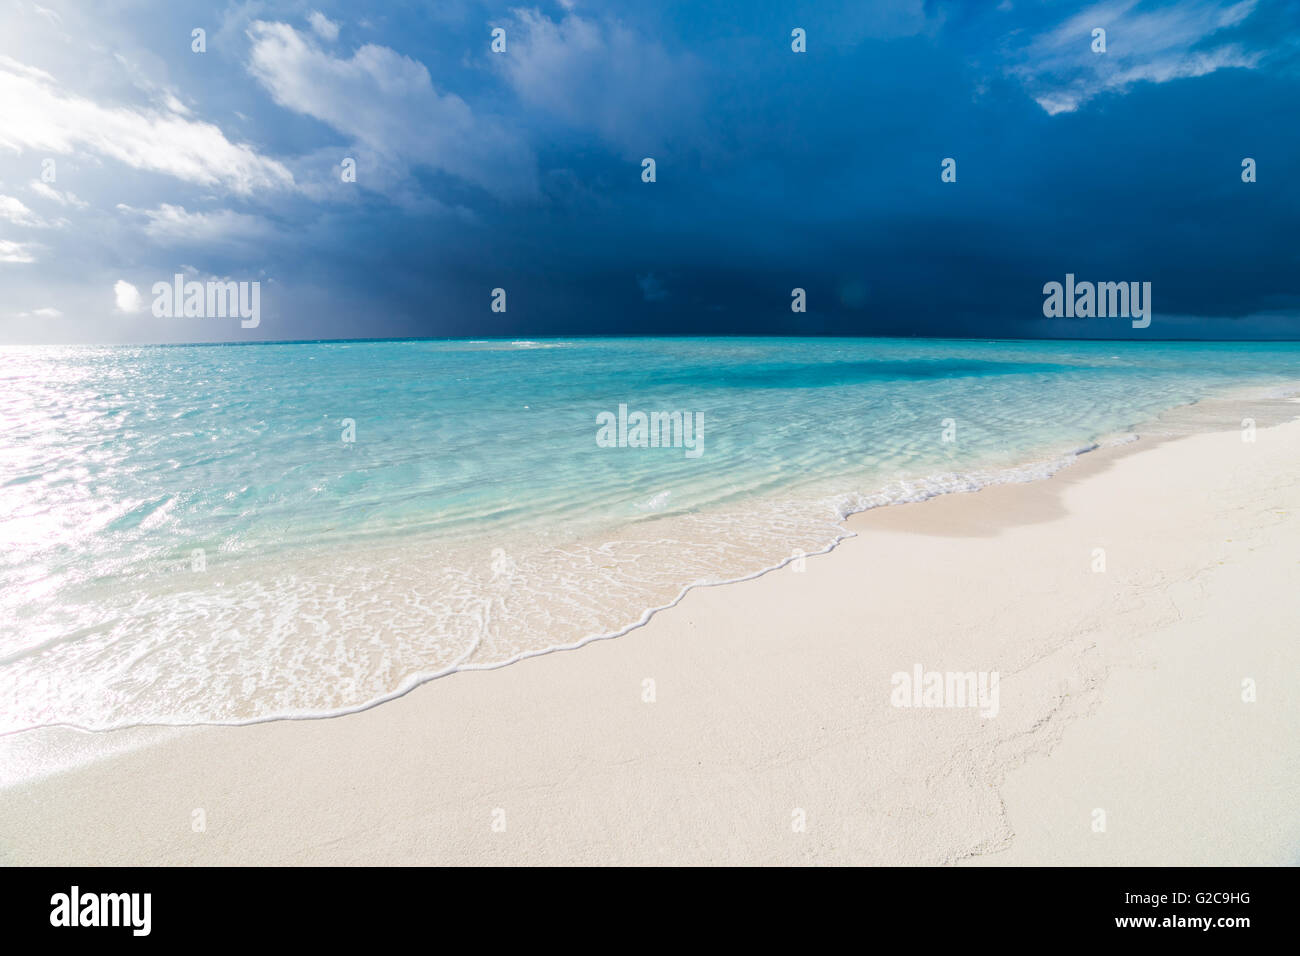 White tropical beach in Maldives with blue lagoon and a tropical storm - Stock Image